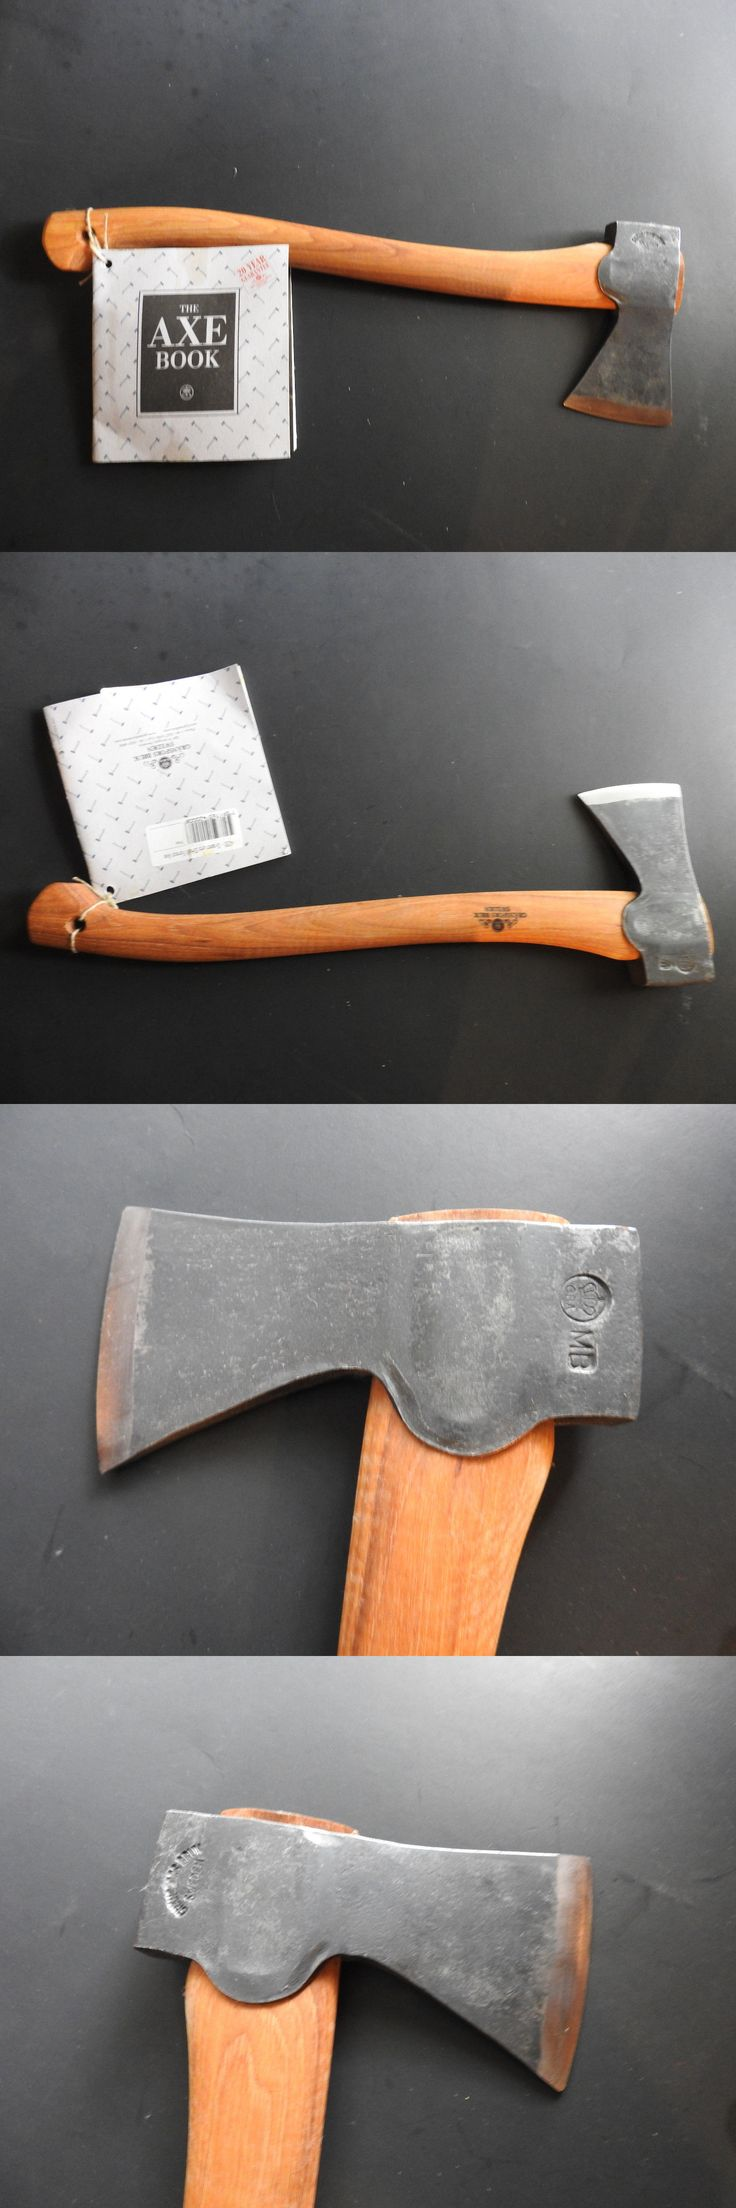 Camping Hatchets and Axes 75234: Gransfors Bruks Small Forest Axe No Sheath Mb -> BUY IT NOW ONLY: $130 on eBay!